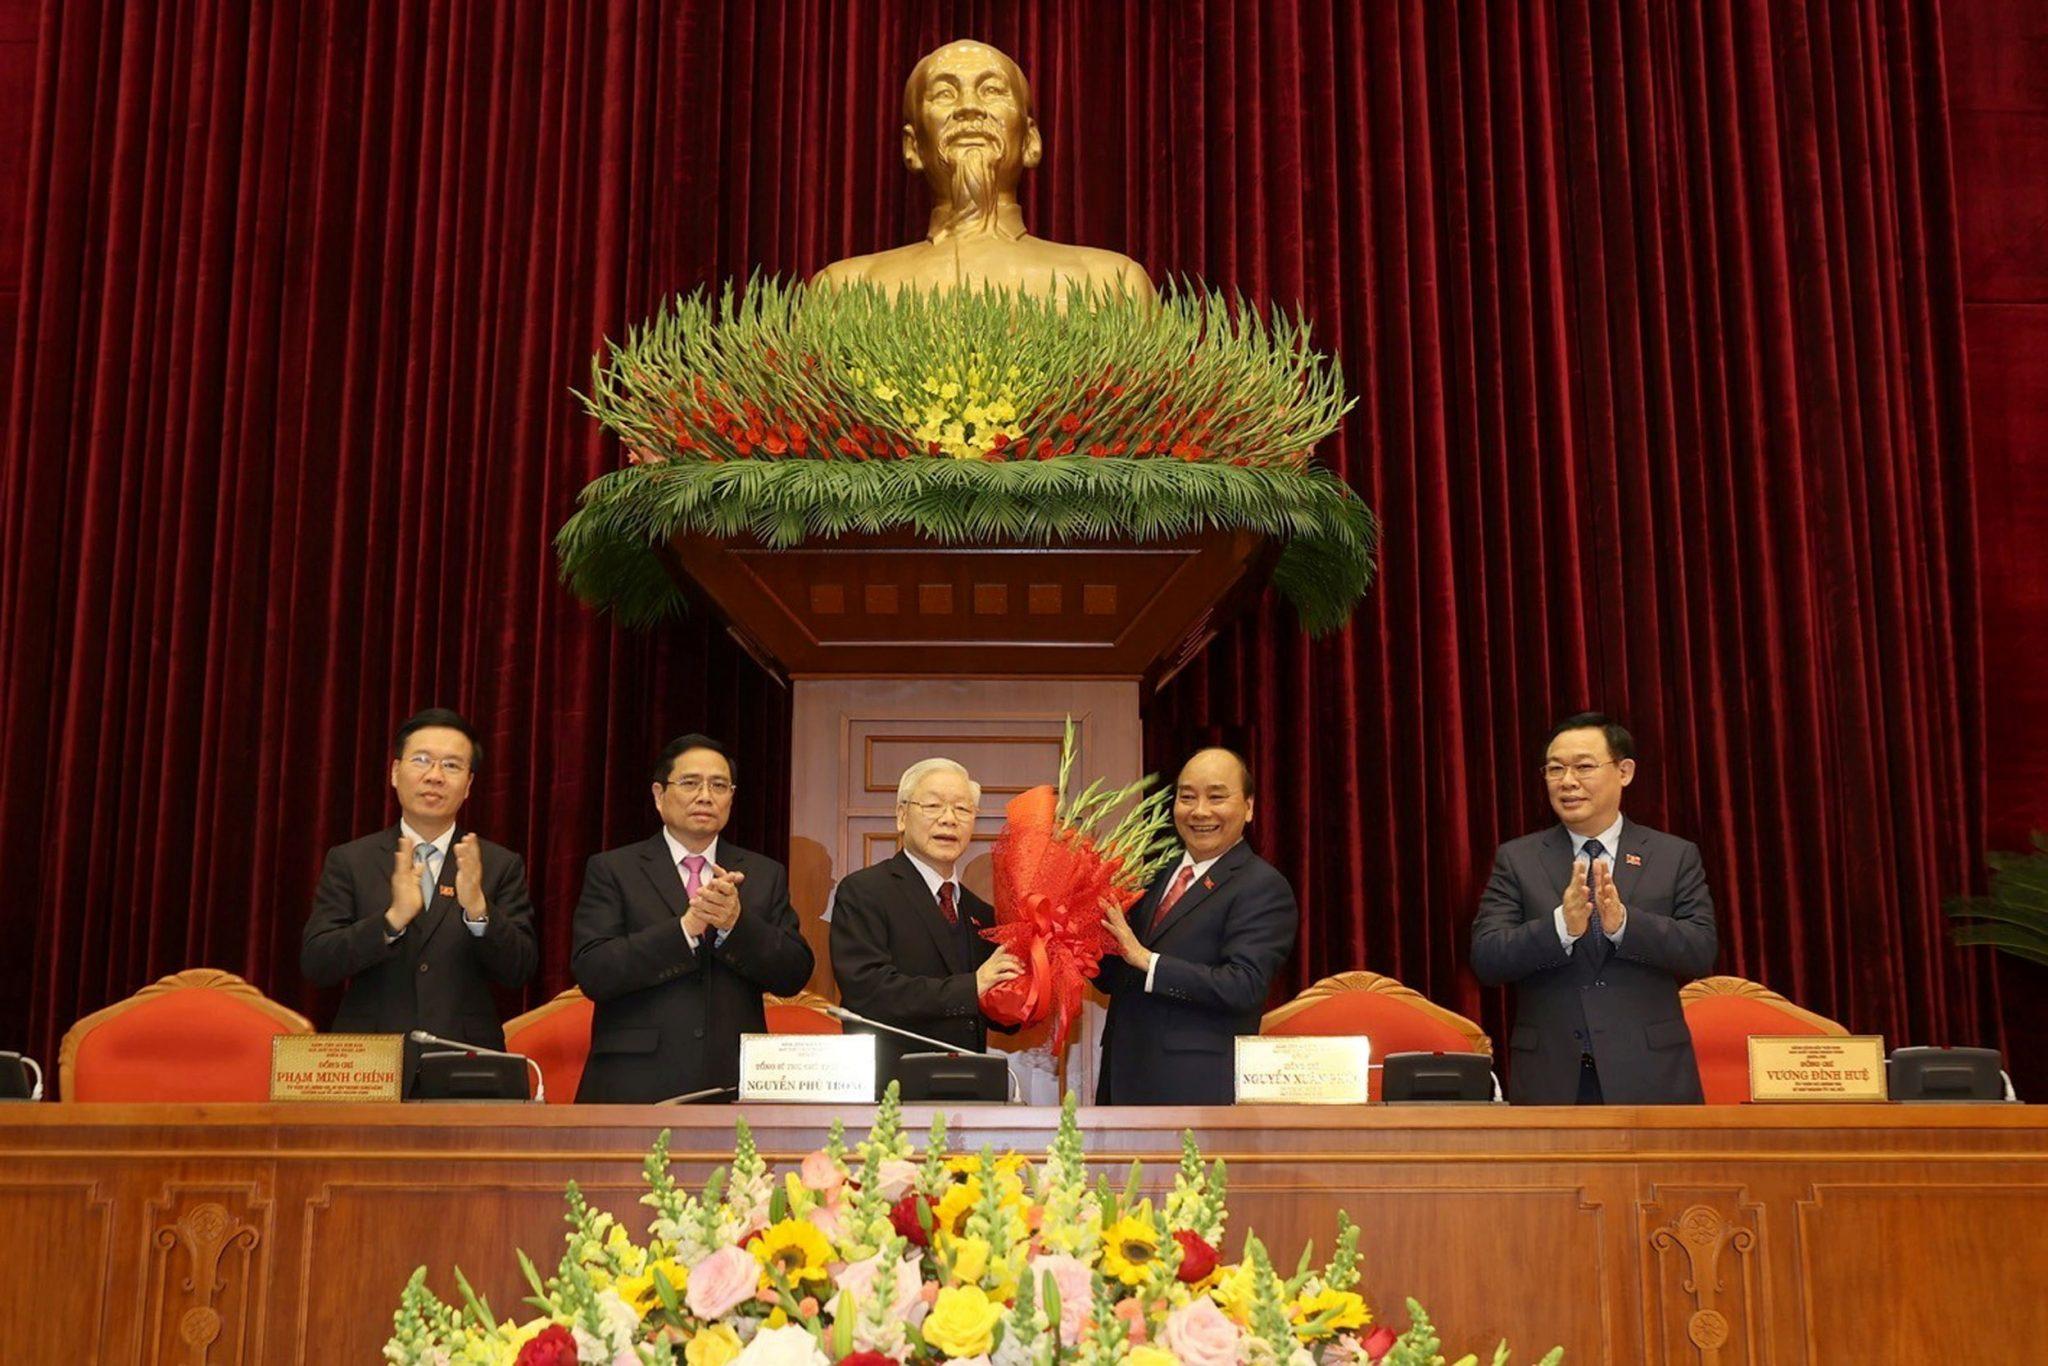 Vietnam's President and General Secretary of the Communist Party Nguyen Phu Trong (3rd L) receives flowers from Prime Minister Nguyen Xuan Phuc after he was re-elected as party chief for a 3rd term during the 13th national congress of the ruling communist party in Hanoi, Vietnam, 31 January 2021. L-R are politburo members Vo Van Thuong, Pham Minh Chinh and Vuong Dinh Hue (Photo:Reuters).